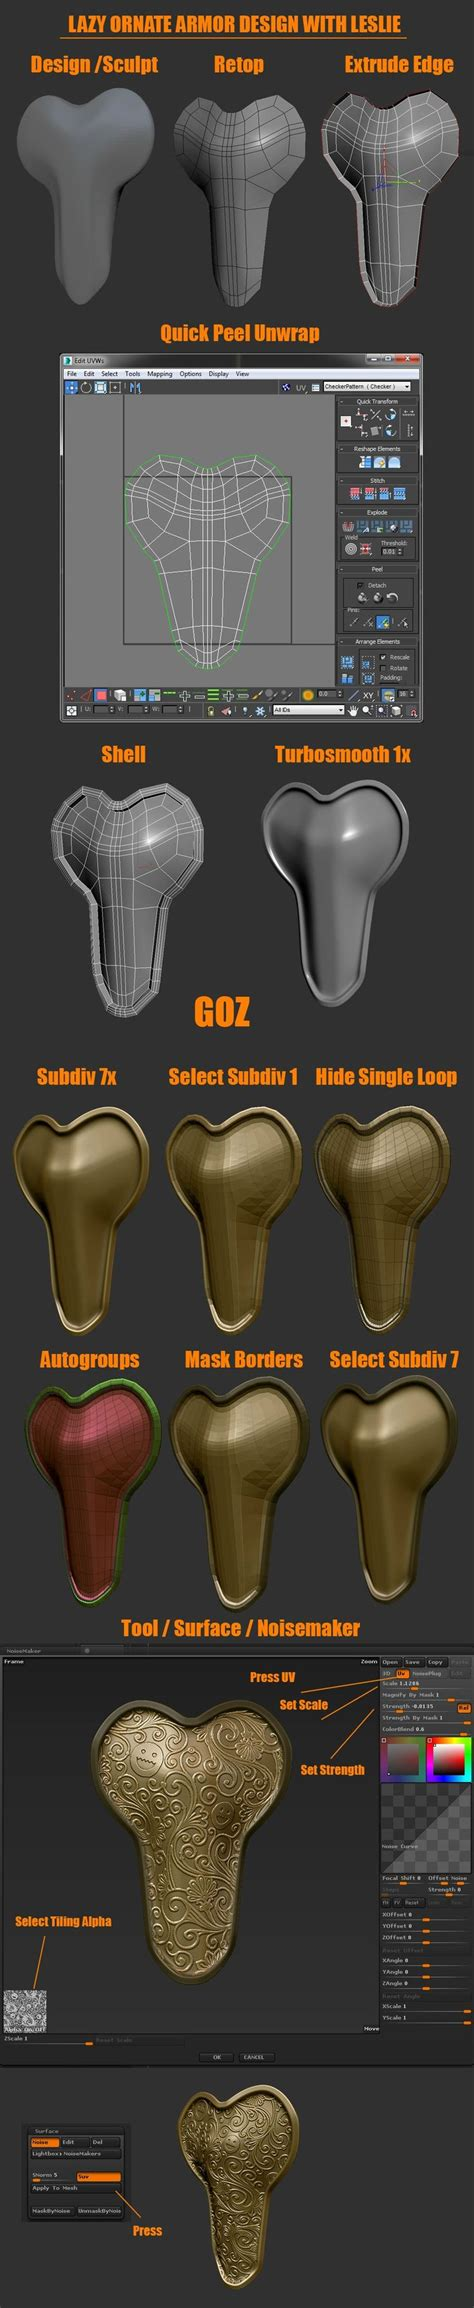 zbrush tutorials best 700 best zbrush tutos images on pinterest